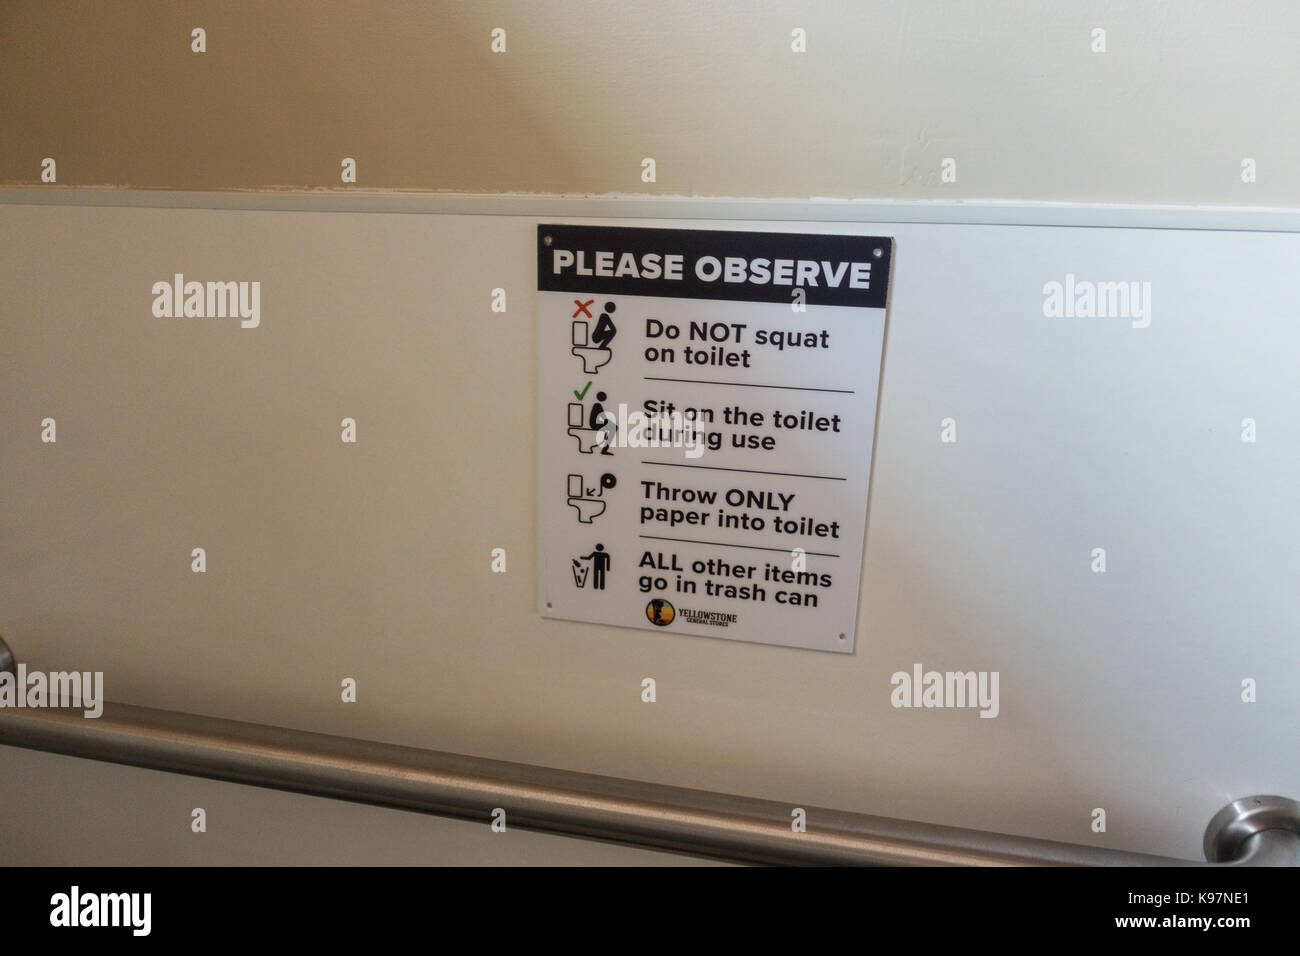 Safety information on how to use a toilet Stock Photo: 160595737 - Alamy